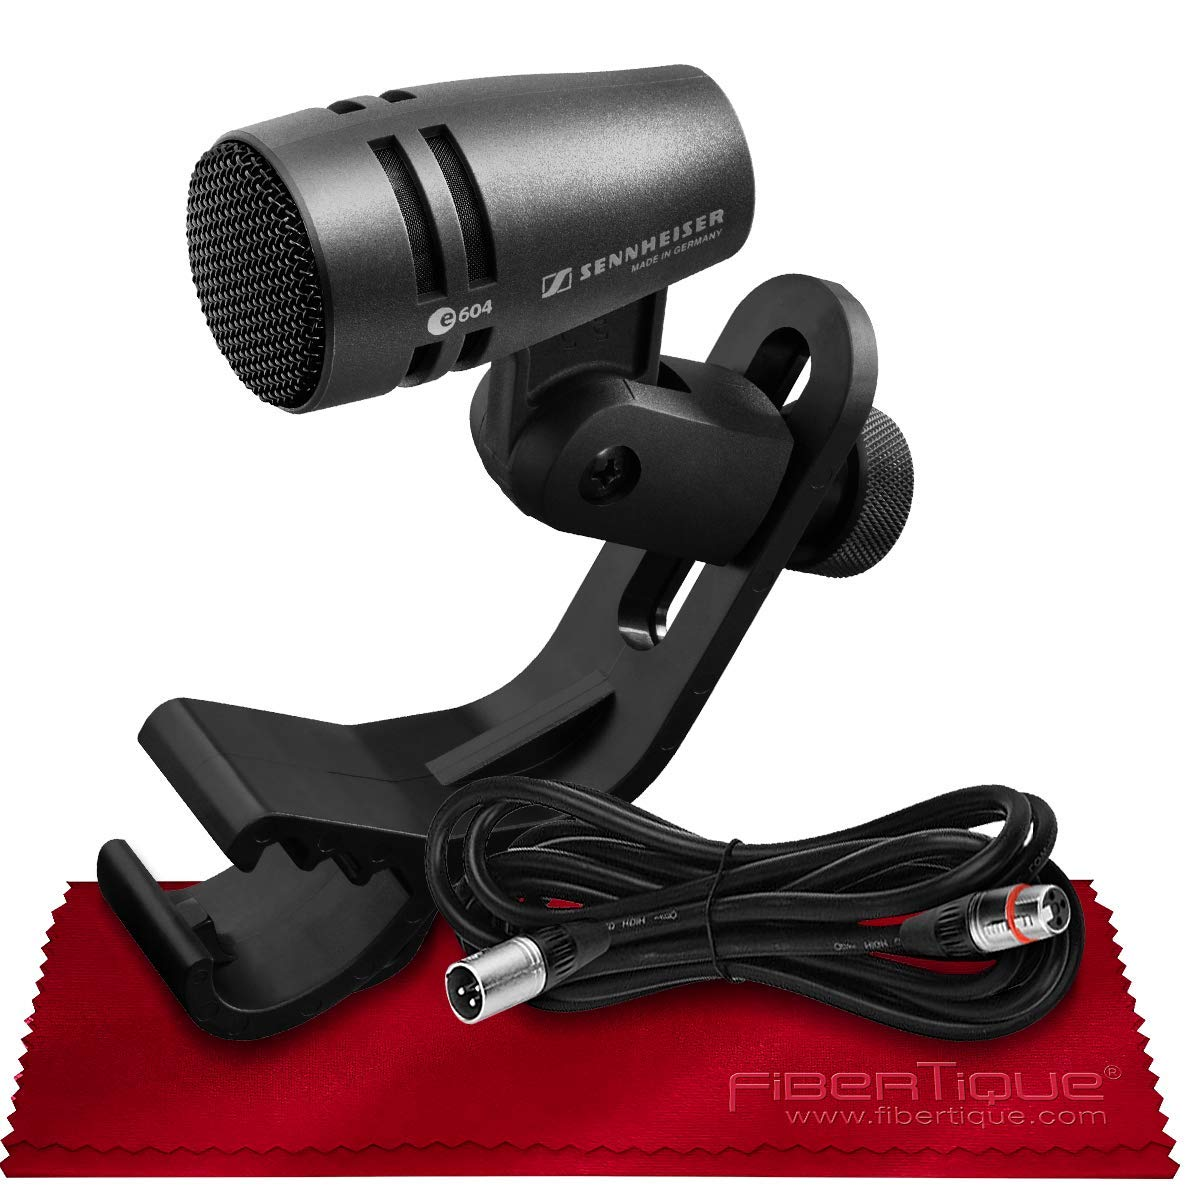 Sennheiser E604 Dynamic Cardioid Instrument Microphone for Snare and Toms with Pro Audio Cable Bundle by PS